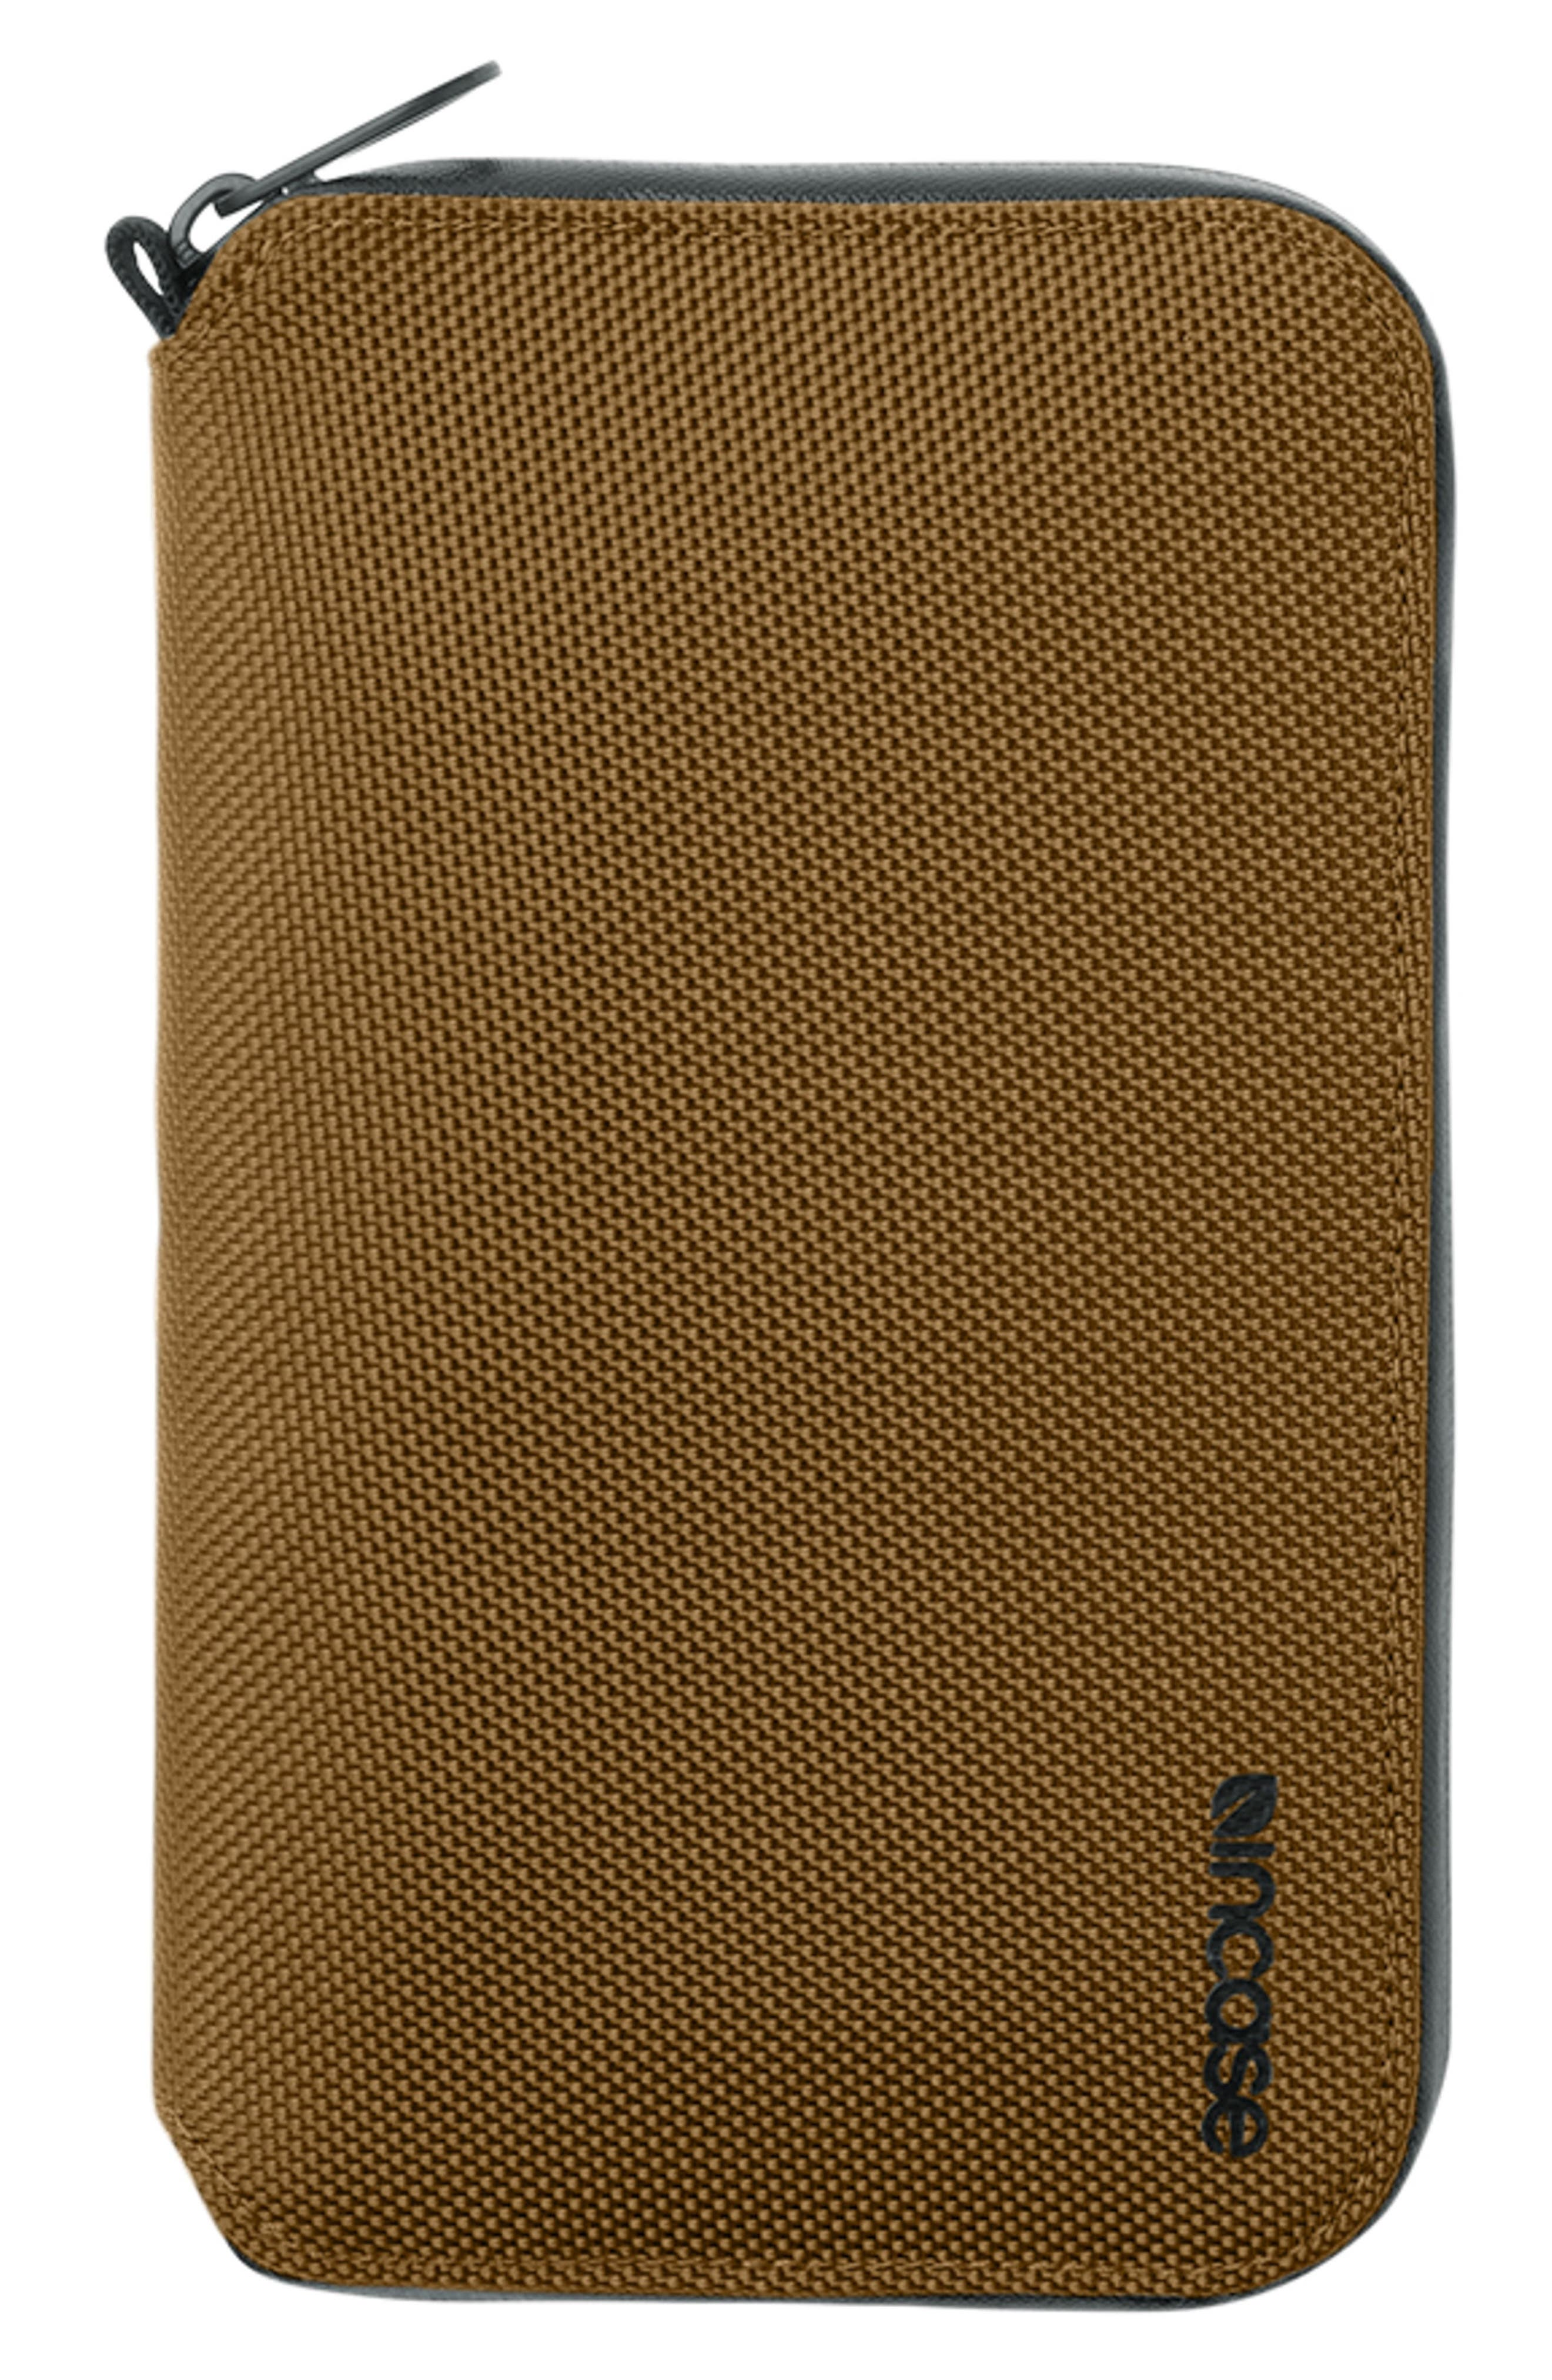 Incase Designs Zip Passport Wallet